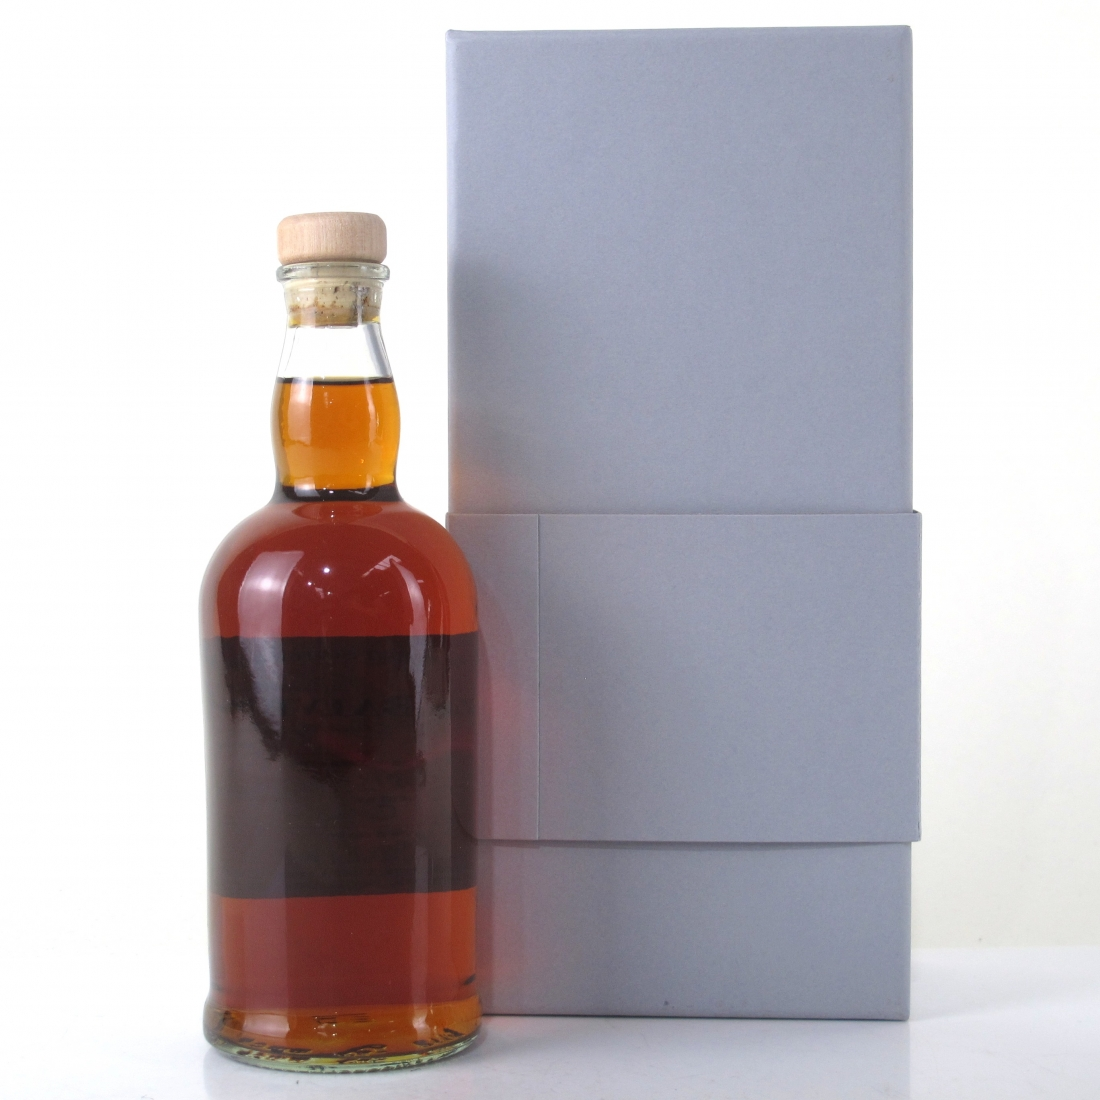 Balvenie 13 Year Old First Fill Sherry Butt 20cl / Warehouse 24 Sample